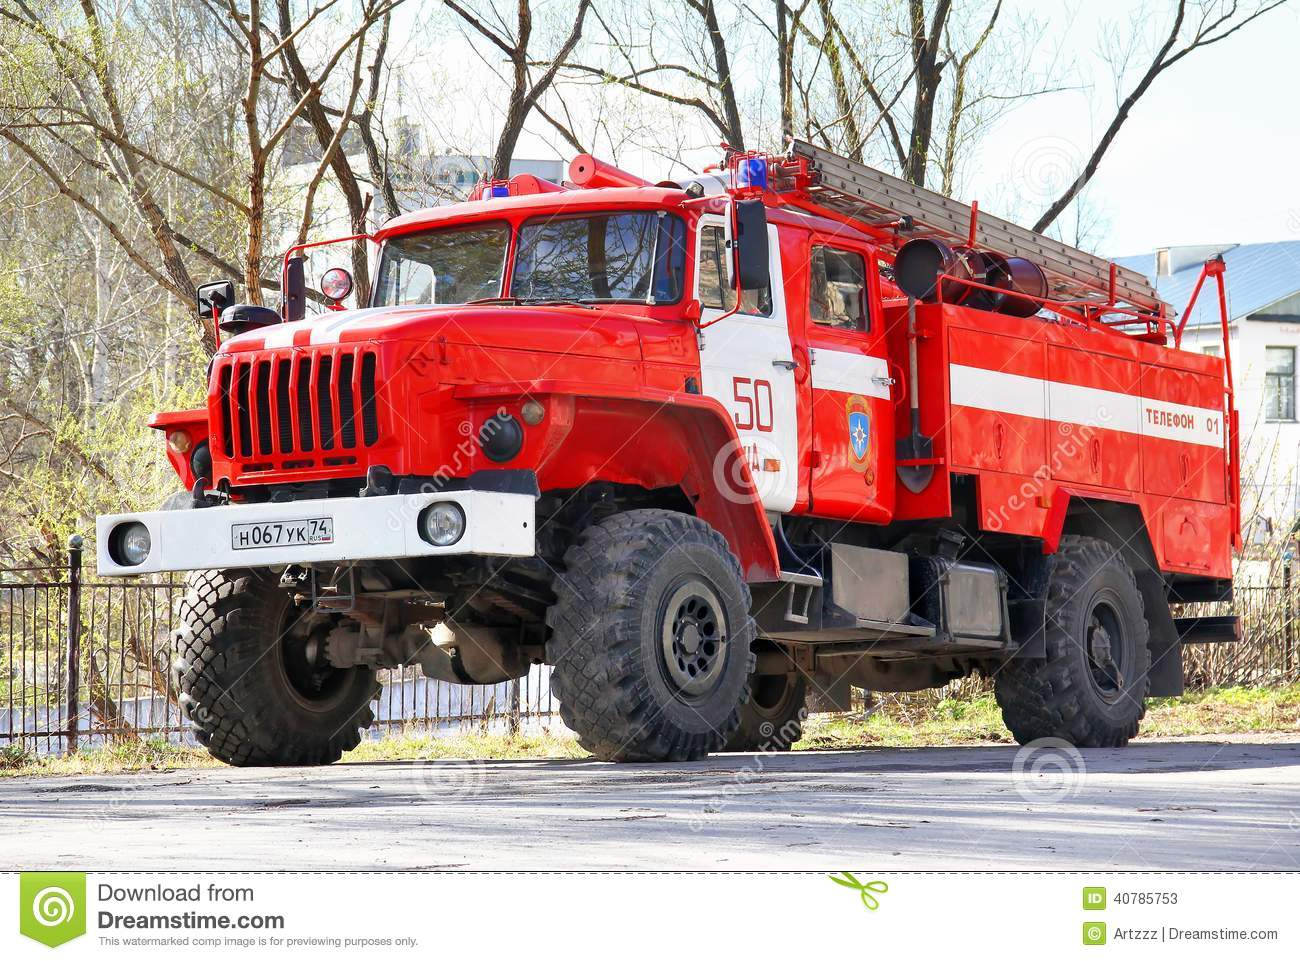 ... , RUSSIA - MAY 4, 2014: Red Ural 43206 firetruck at the city street